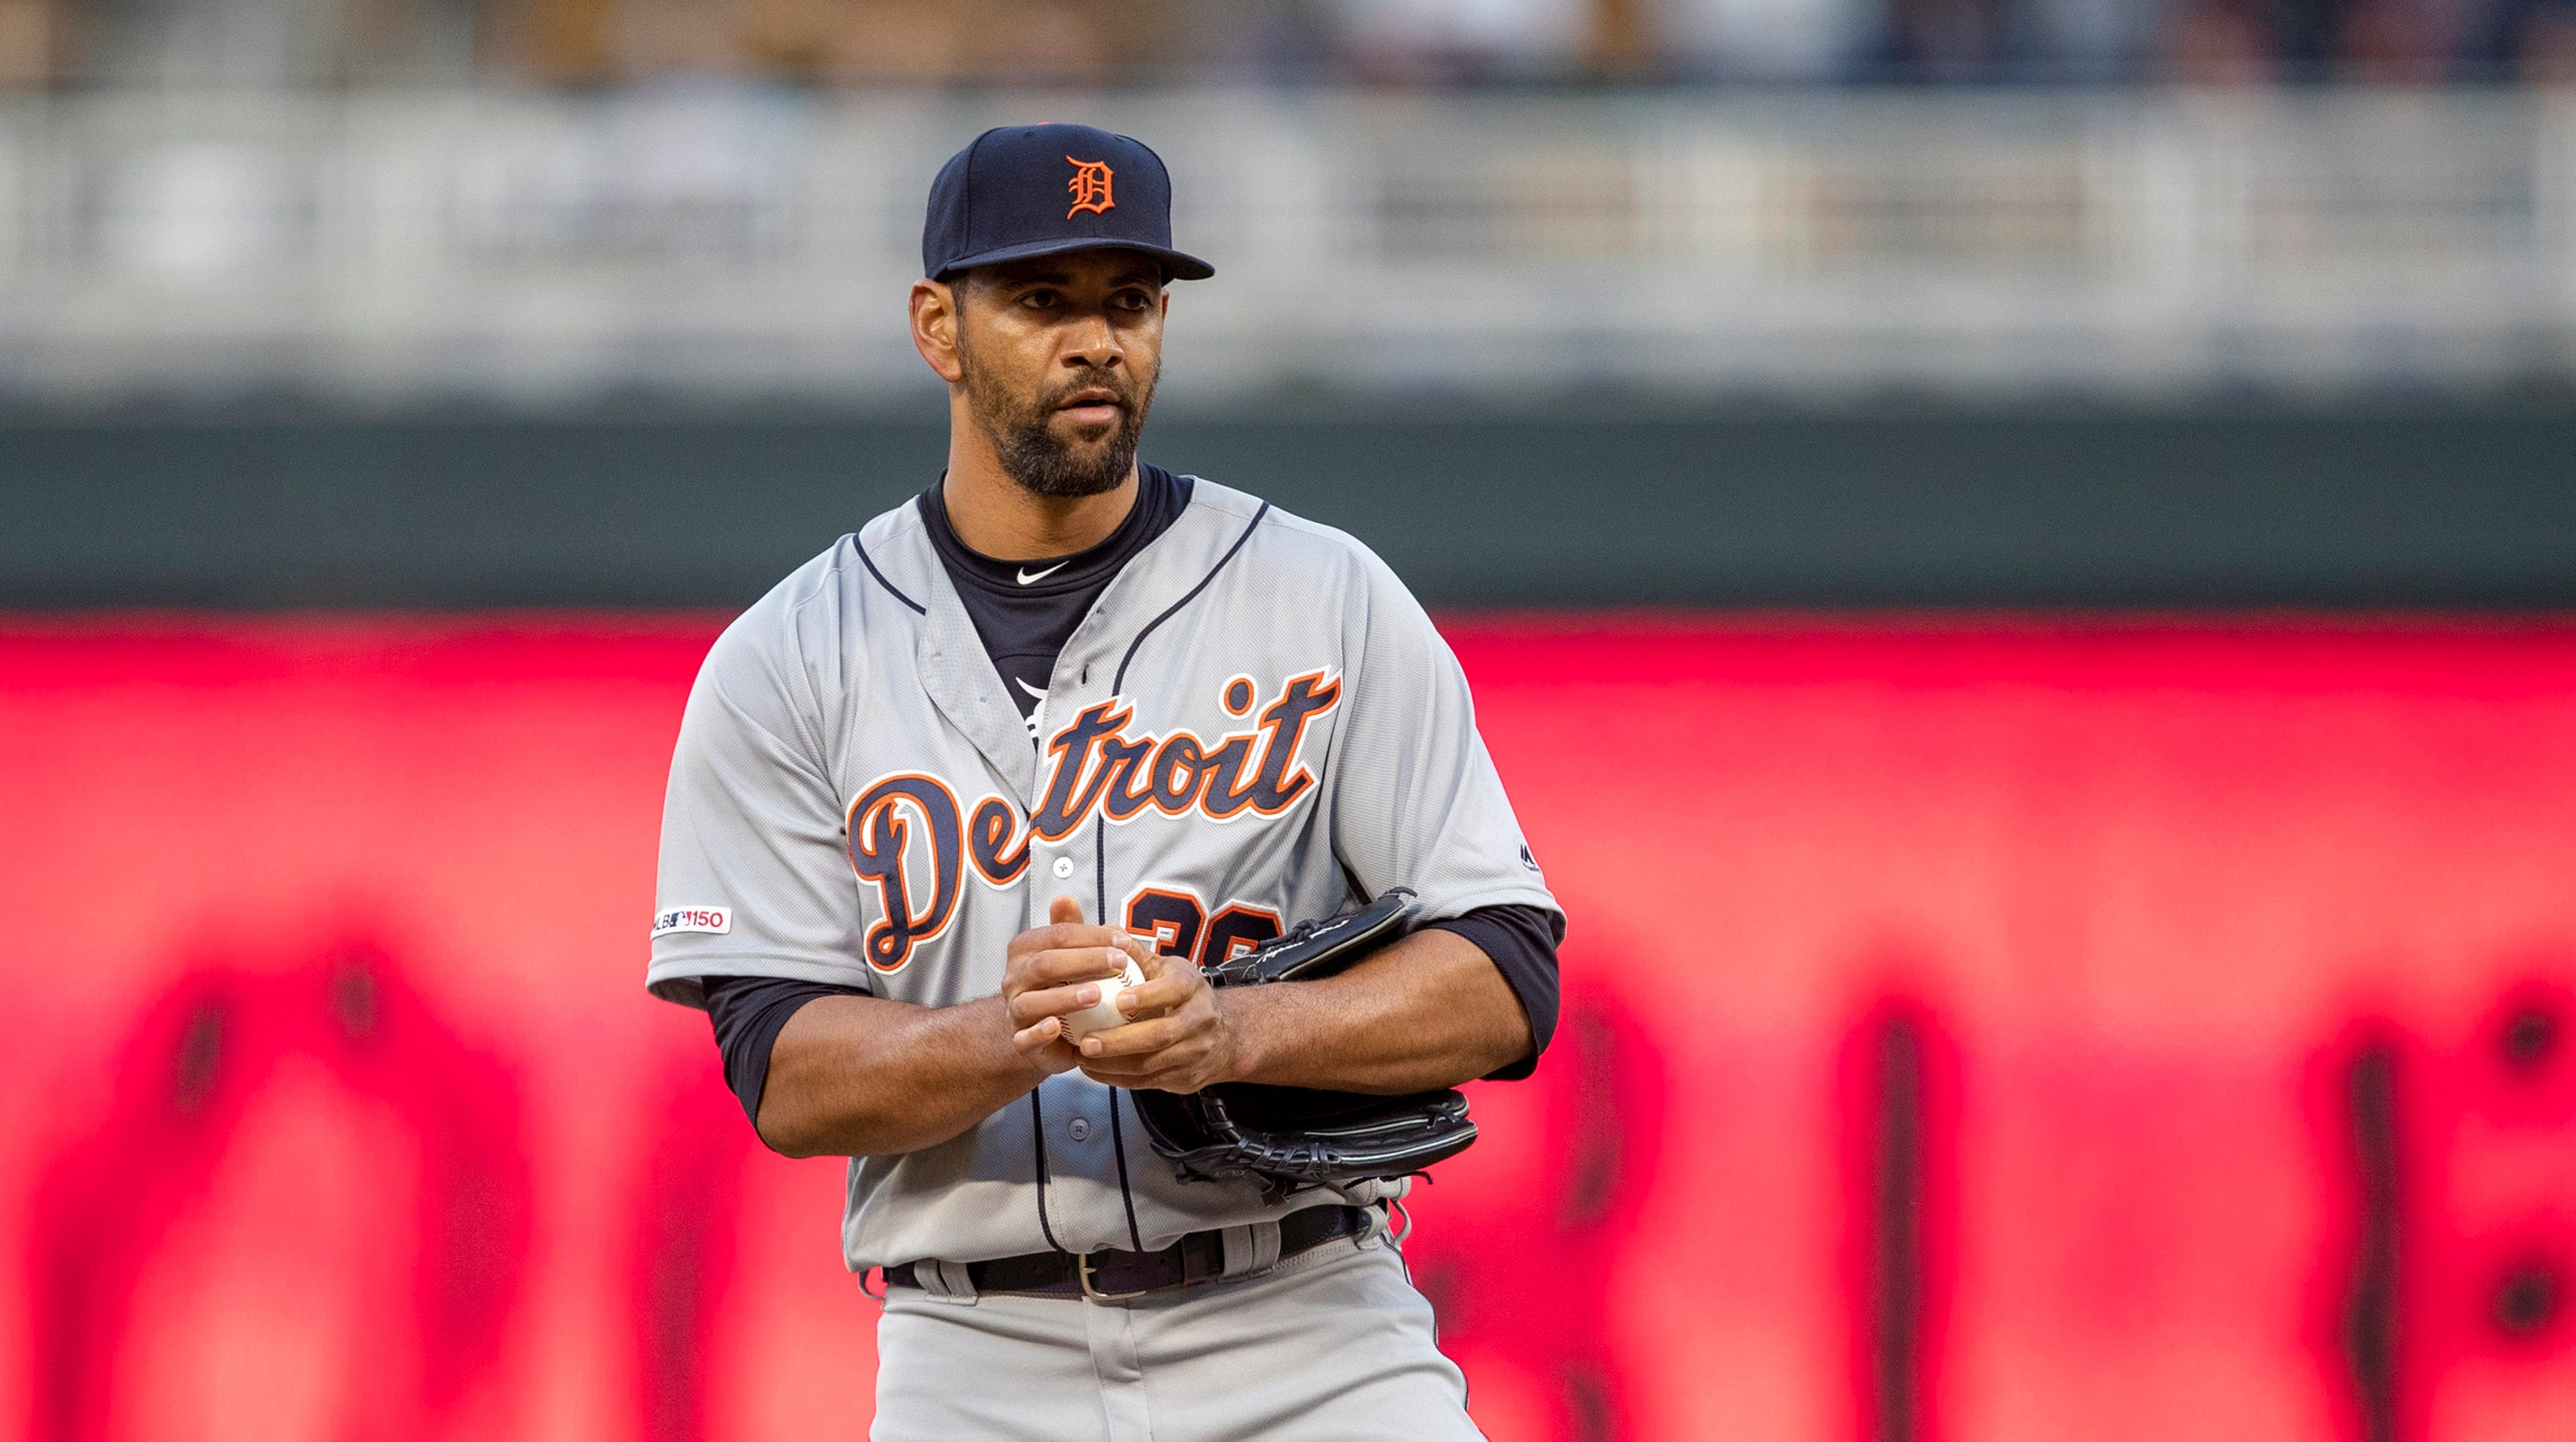 Detroit Tigers' Ross Frustrated Again In Loss To Twins